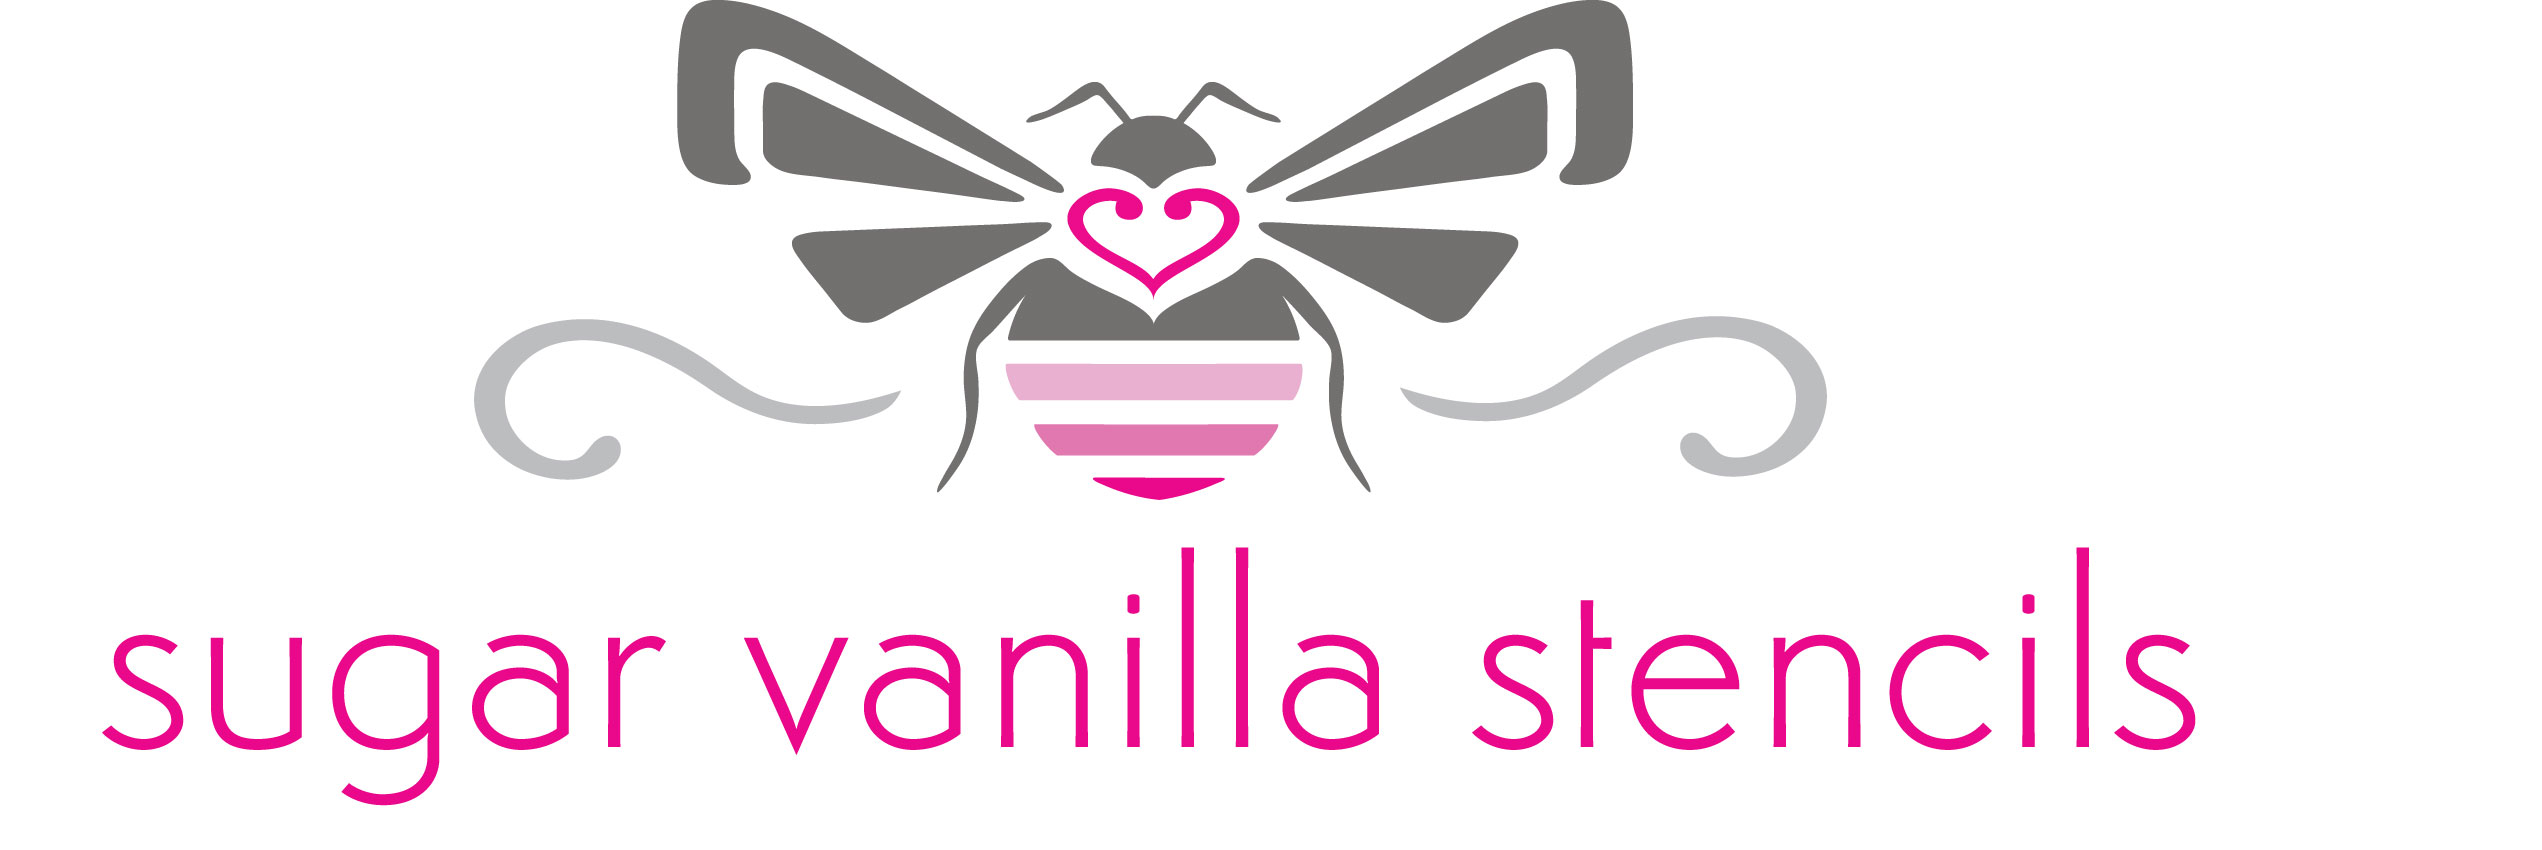 Sugarvanillastencils logo vector copy